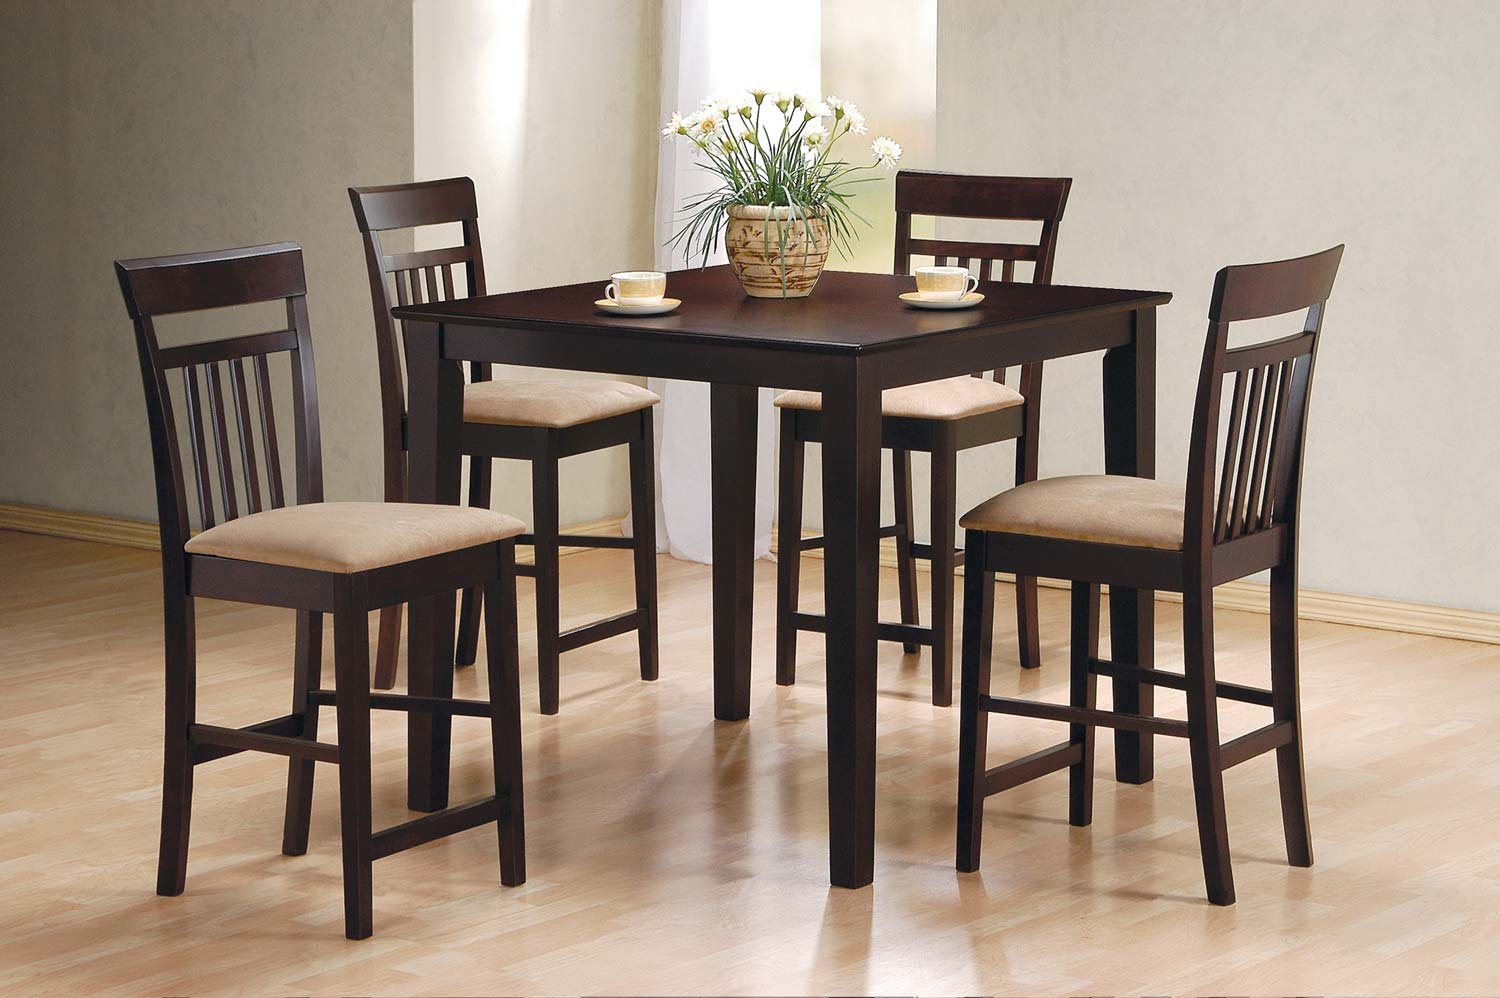 Coaster 150041 5pc Counter Height Dining Set Cappuccino 150041 At Homelement Com